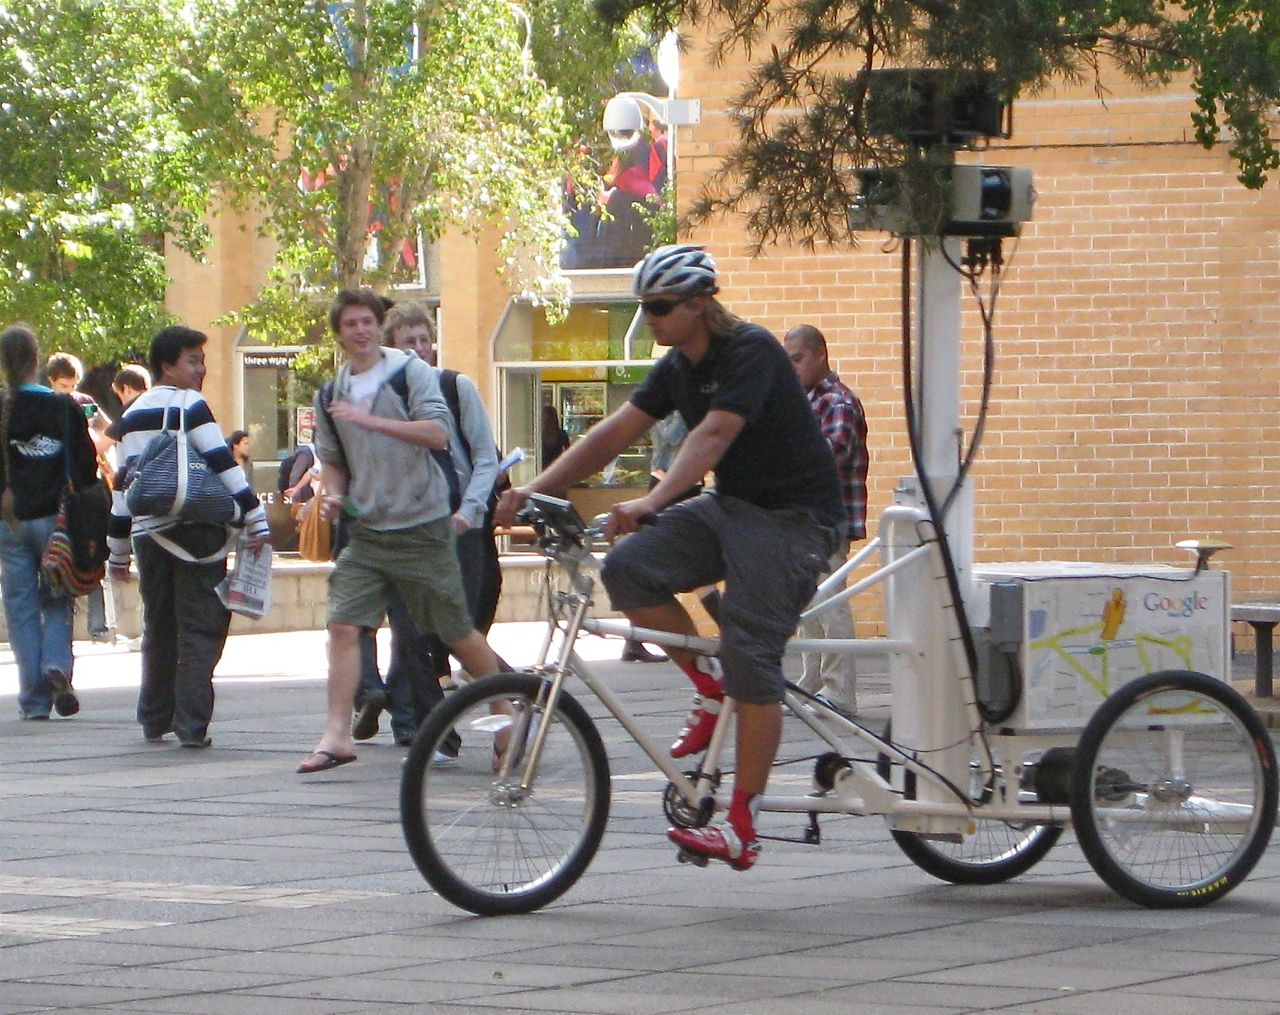 The Google Street View trike visits the University of Melbourne